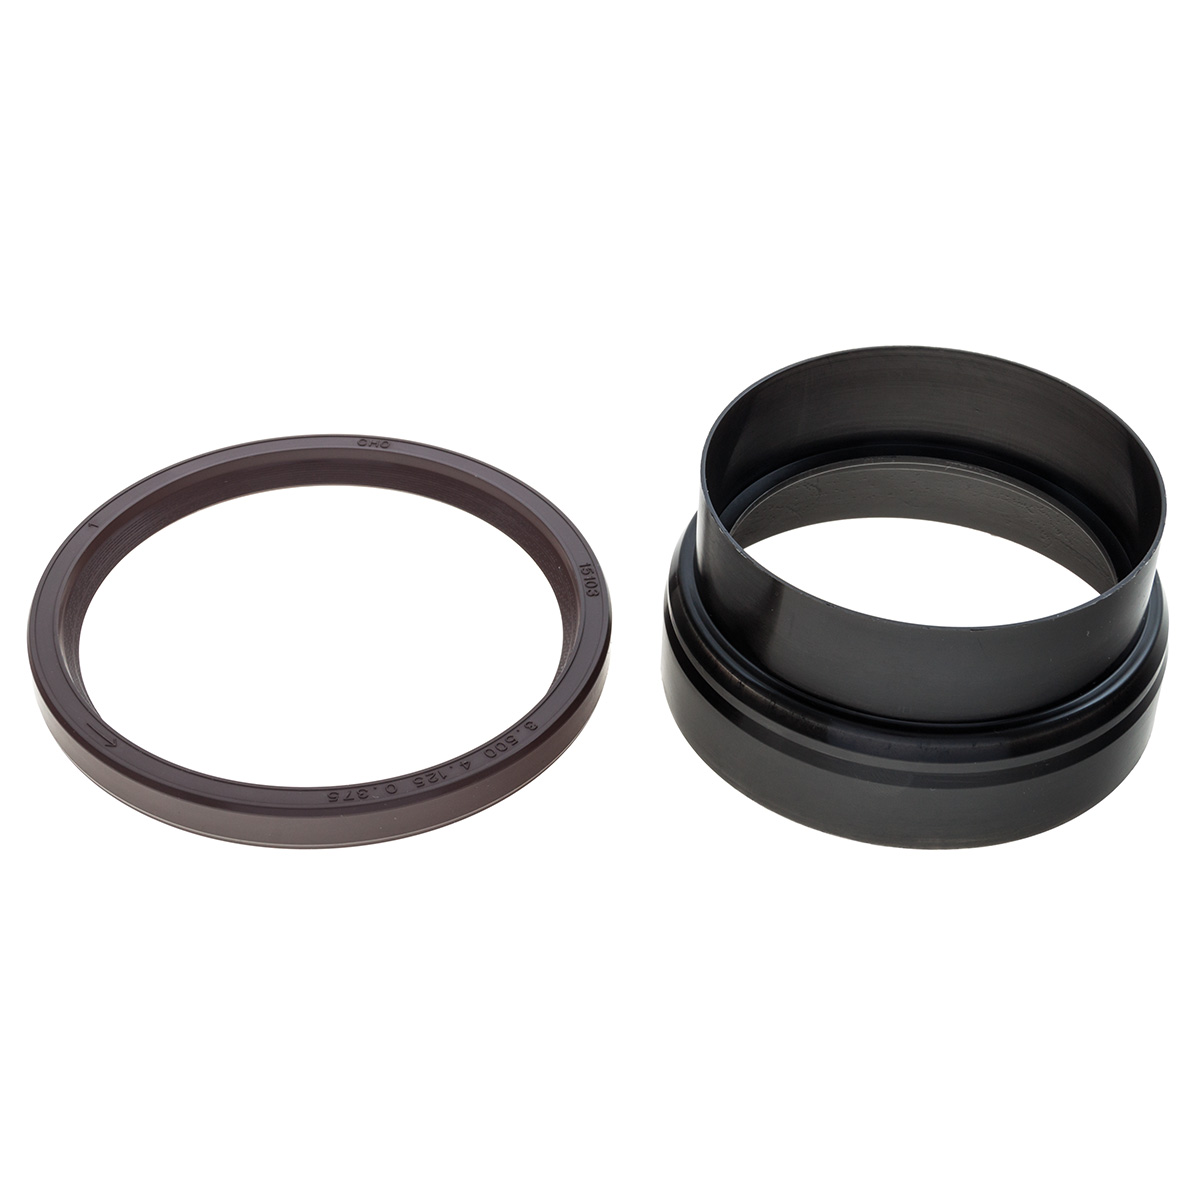 MGB 1964-1980 • NEW • Moss Europe LUF10002 sleeve Rear oil seal improved